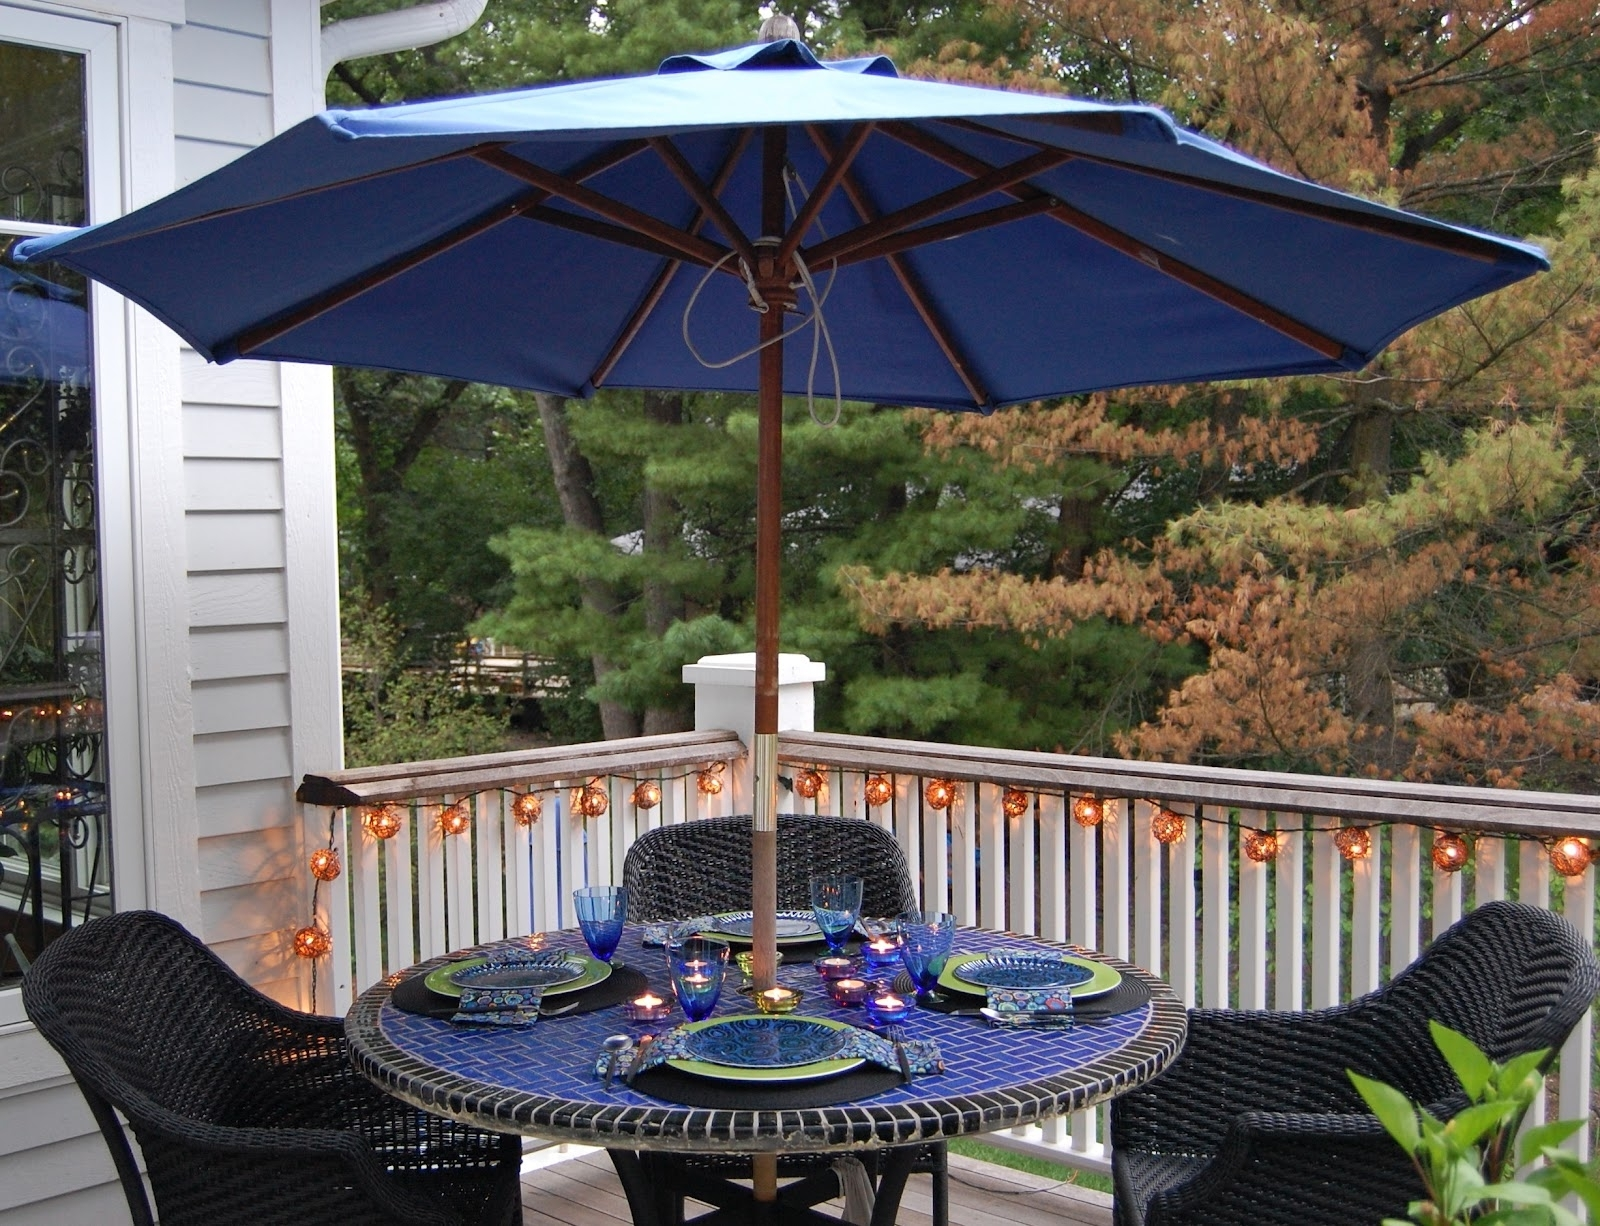 Walmart Umbrellas Patio Intended For Fashionable Furniture: Outdoor Outdoor Patio Sets With Umbrella Awesome Design (View 14 of 20)